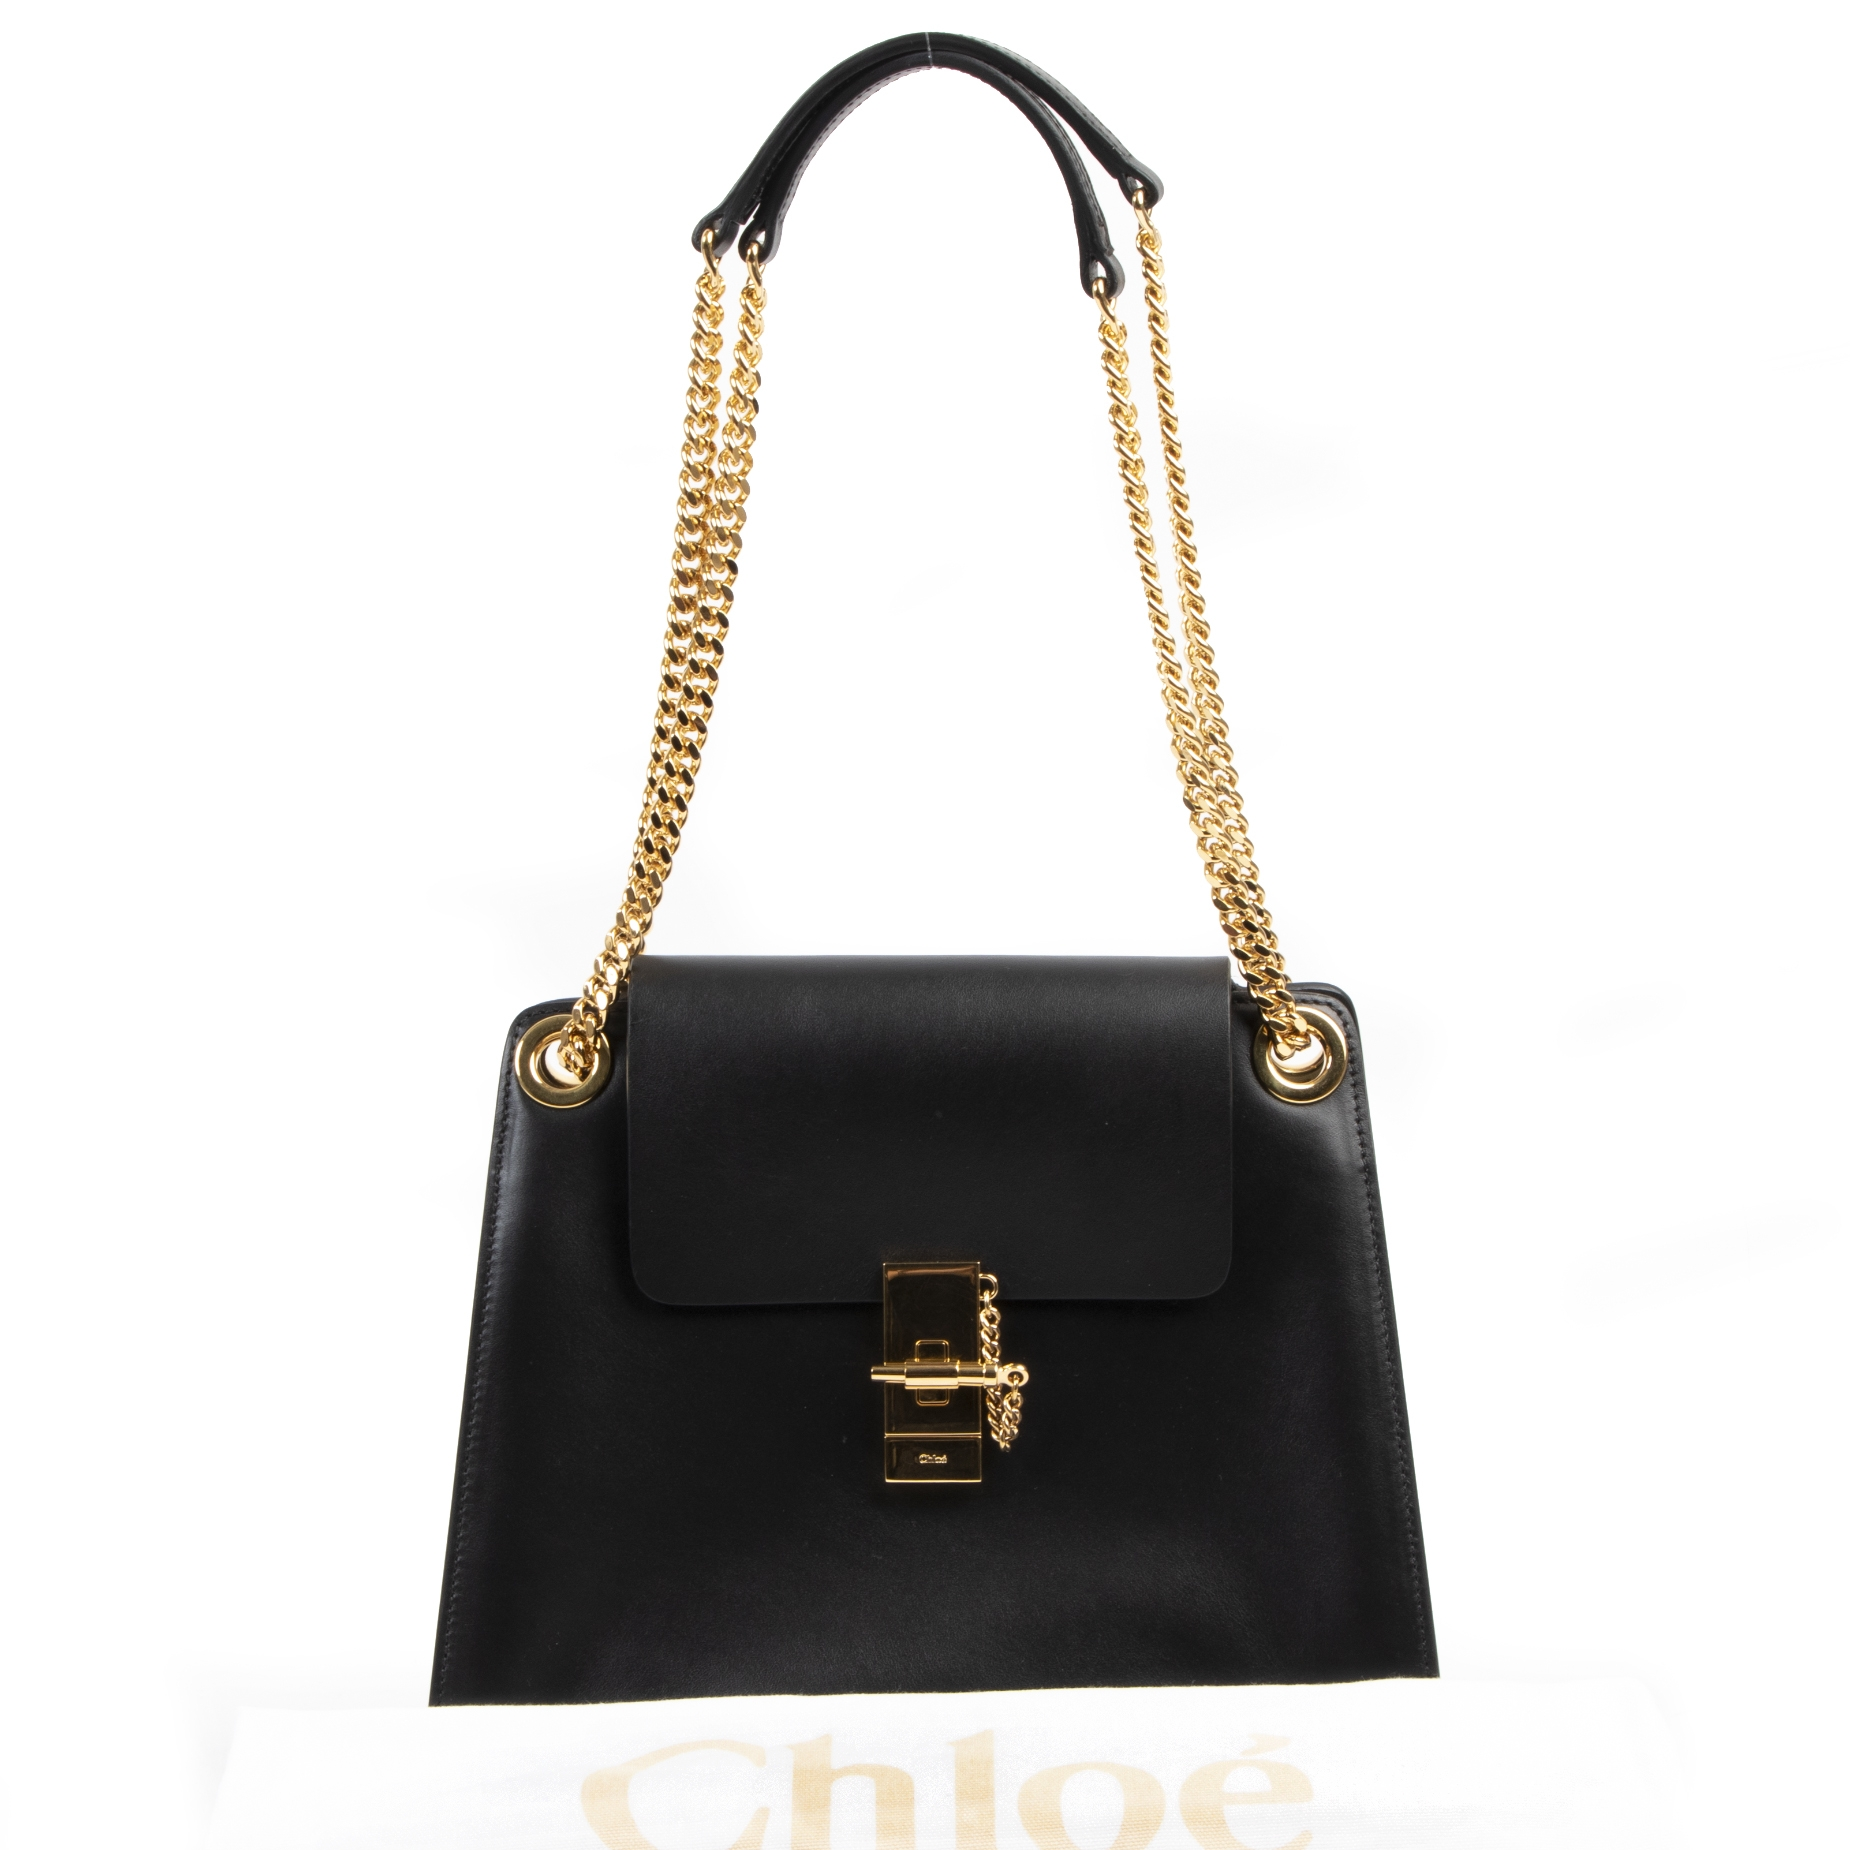 We buy and sell your authentic designer Chloé Black Annie Shoulder Bag GHW for the best price